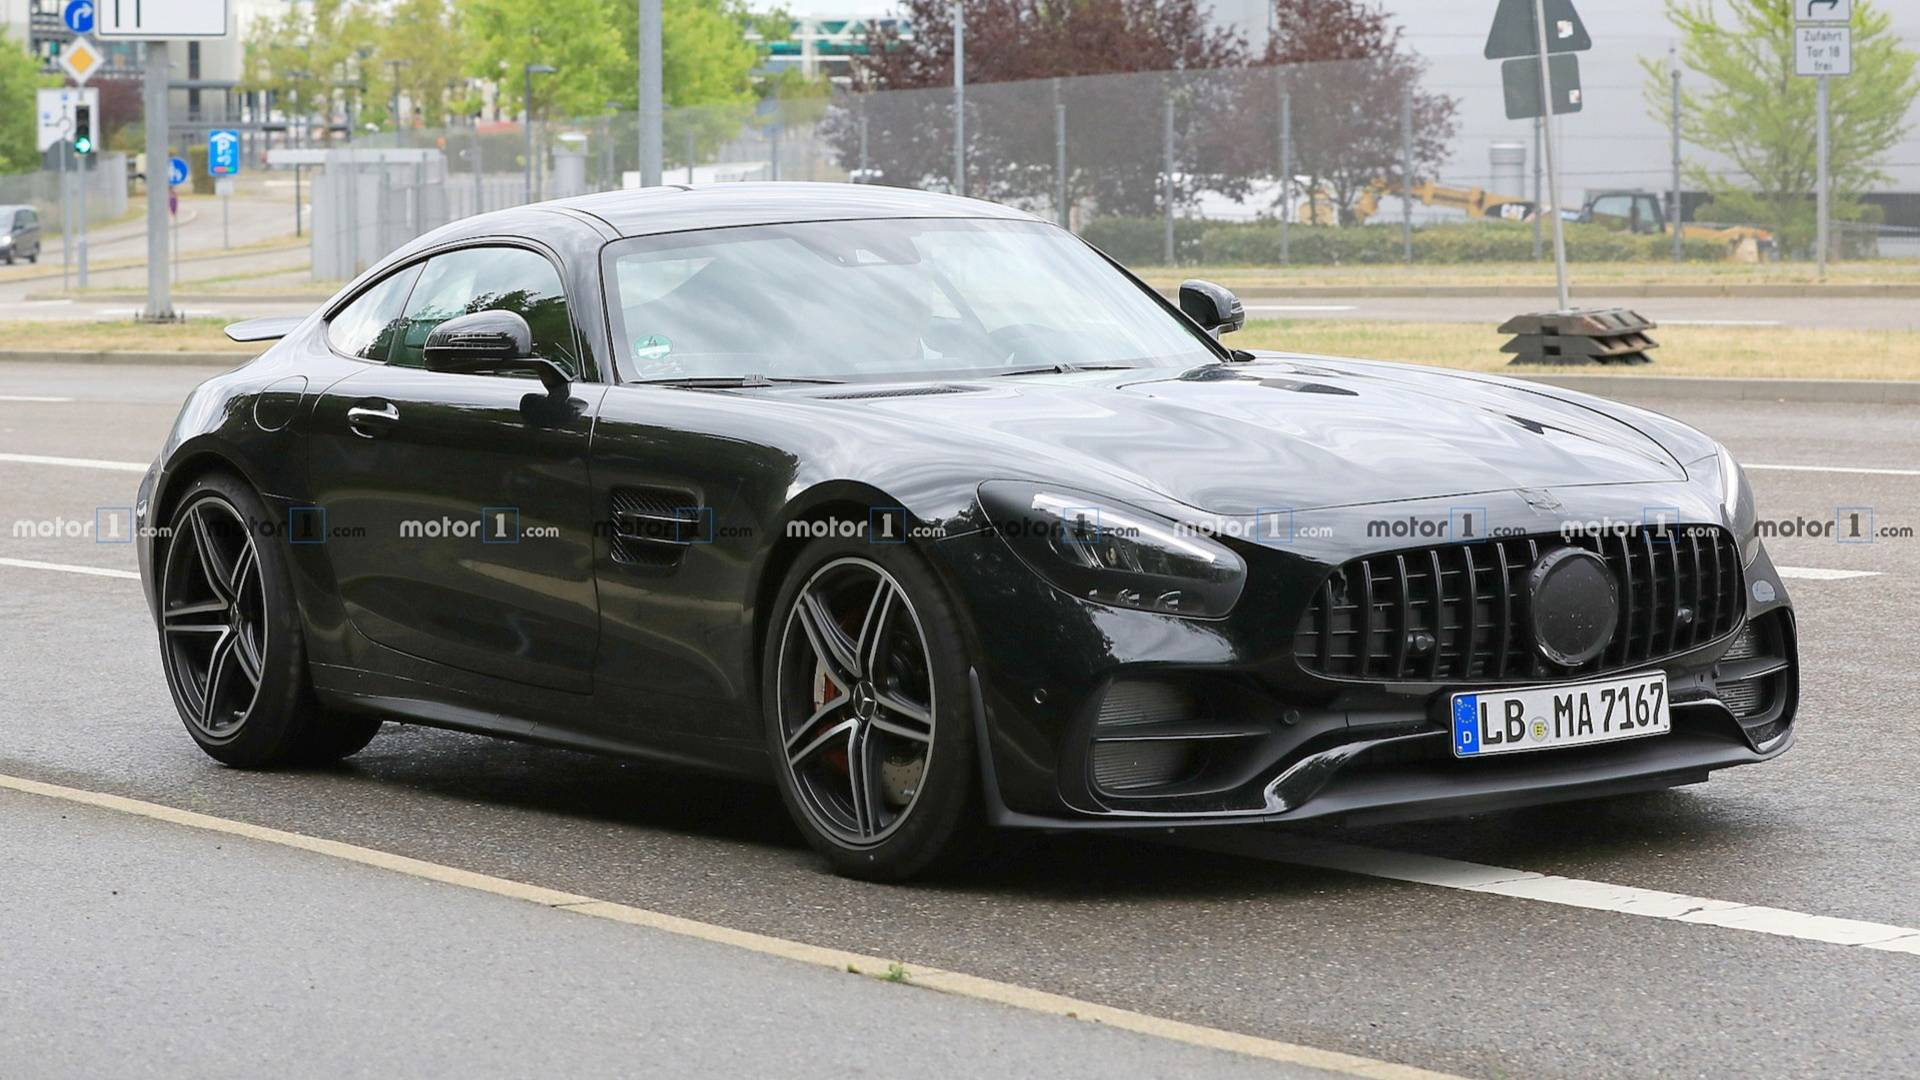 The Mercedes-AMG GT is Getting a Facelift